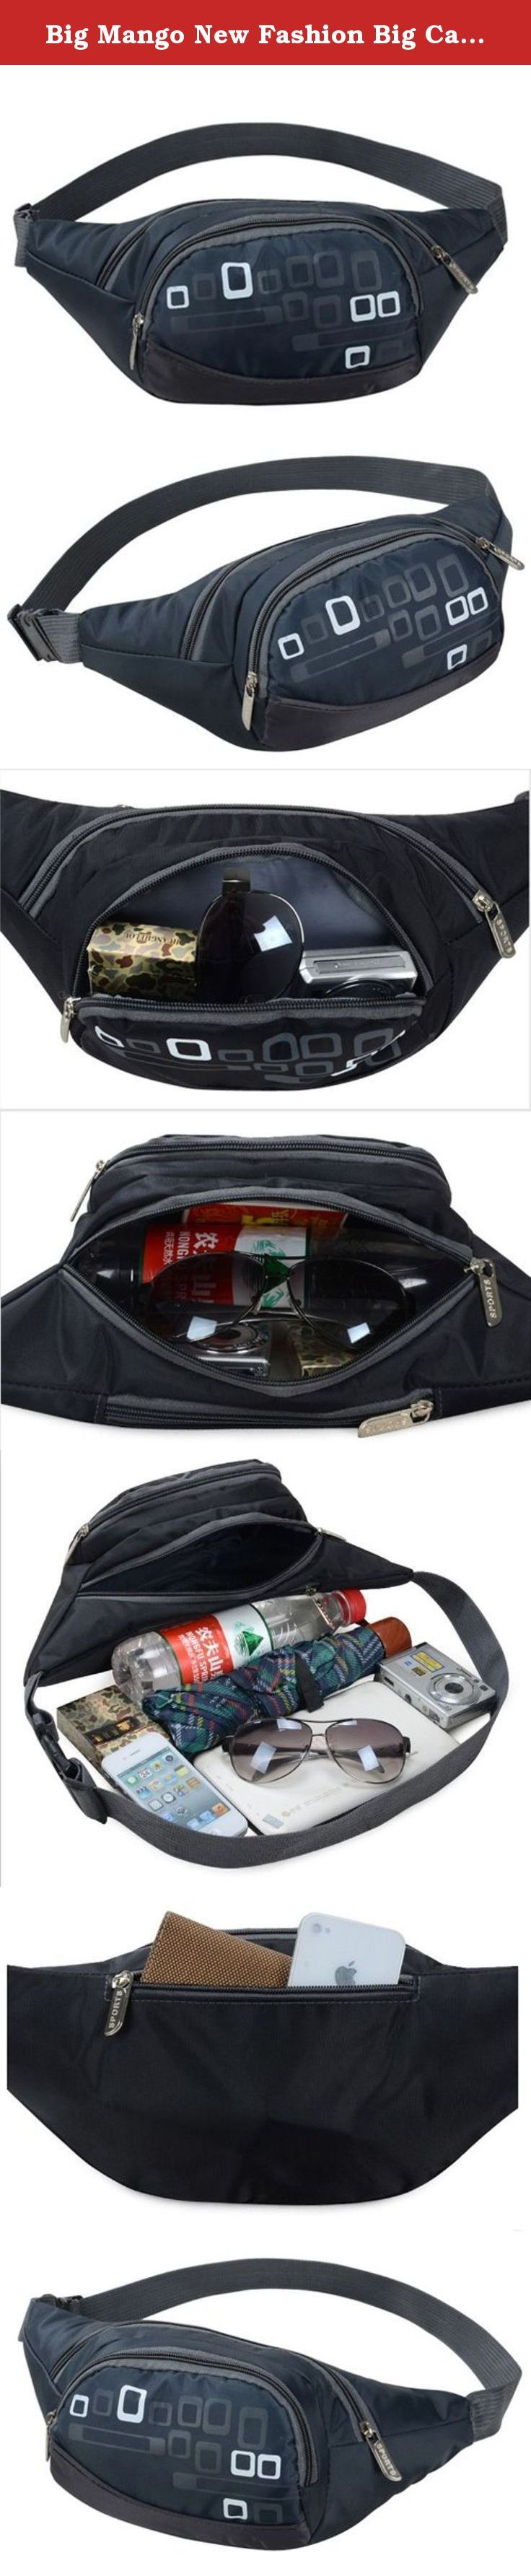 Big Mango New Fashion Big Capacity Womens Sports Bag 3 Zipper Pockets Waist Bag Fanny Chest Pack with Cell Phone Pouch & Automatic Umbrella & Small Personal Stuffs for Both Men and Women Use - Dark Blue. Good quality nylon cloth and fine workmanship,great bag for carrying personal stuffs,such as wallets,keys,cell phone and walkman,automatic umbrella,best organizer for travlling and sports.The multiple zippers design makes it neat and keep your things at hand.Outdoor activities and leisure…